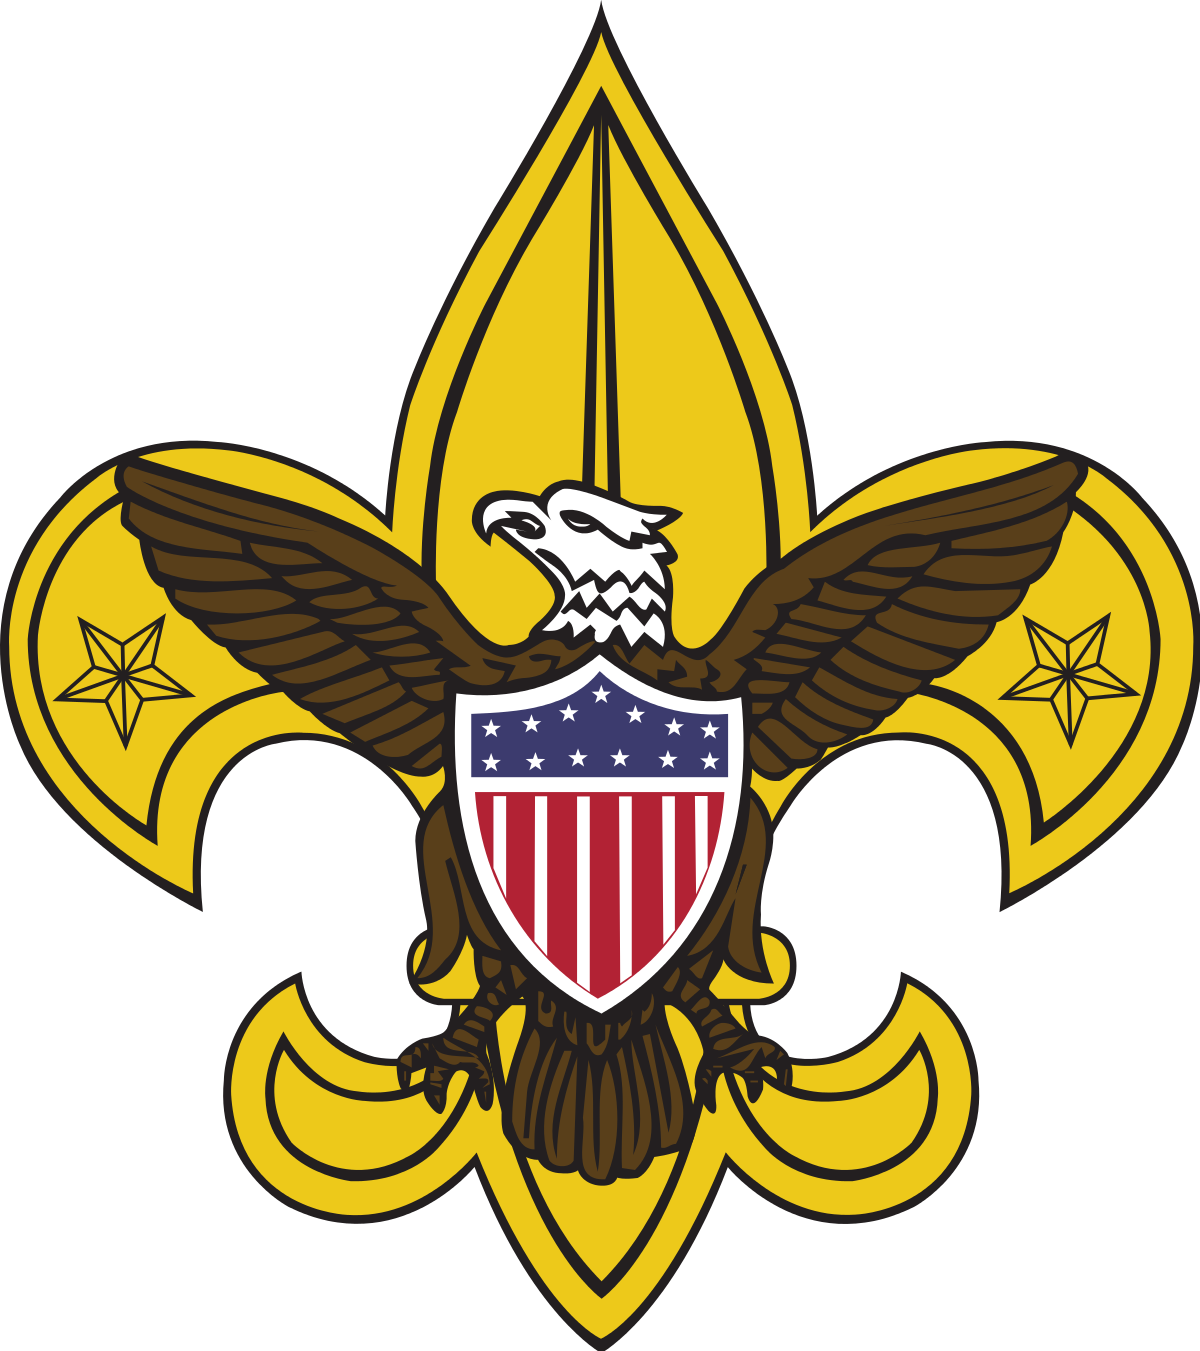 Boy scout logo png. Scouting scouts of america